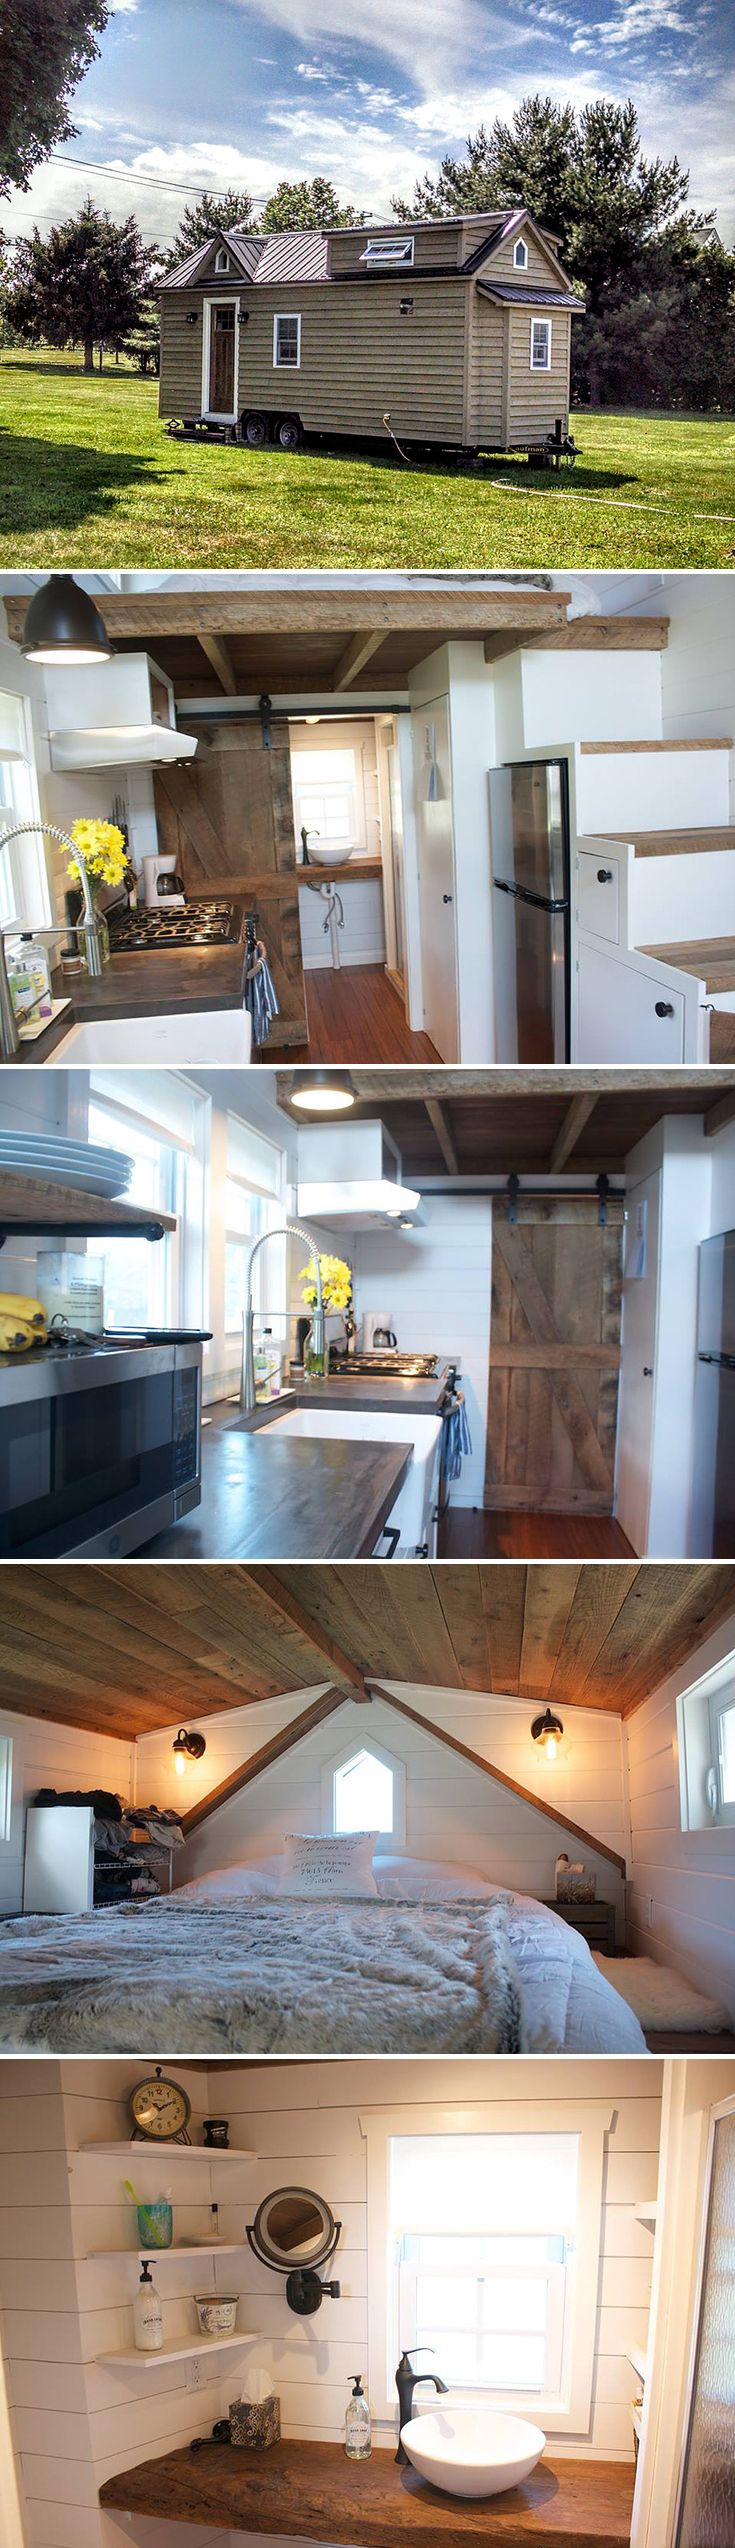 Built On A 24 Trailer And Uses Reclaimed Wood Throughout Custom